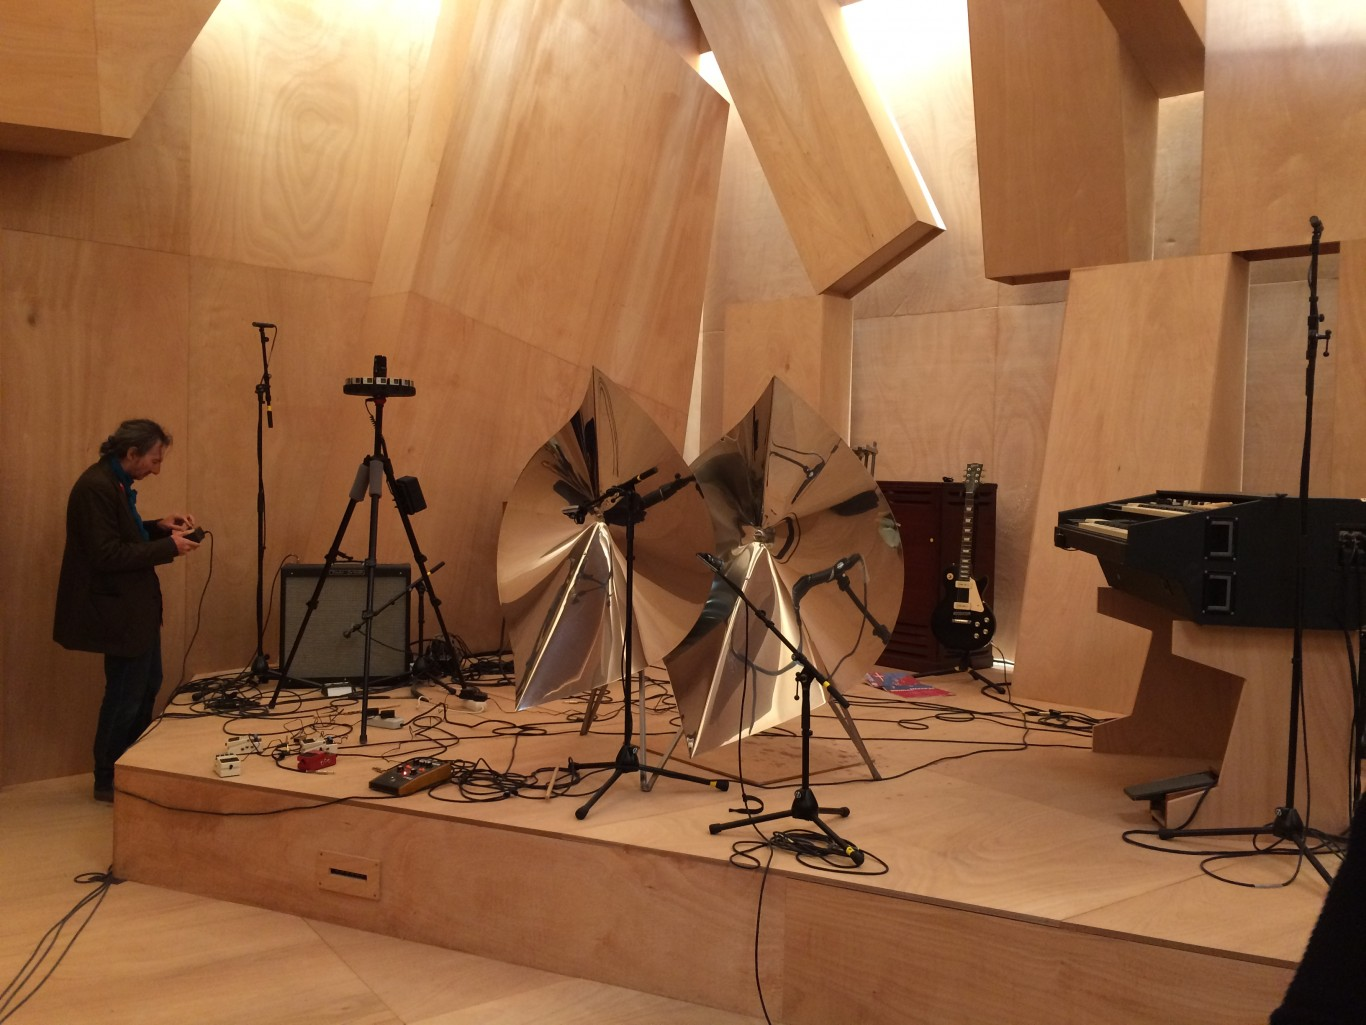 Inside, various instruments and a 360 degree camera wait for the beginnings of that day's performance